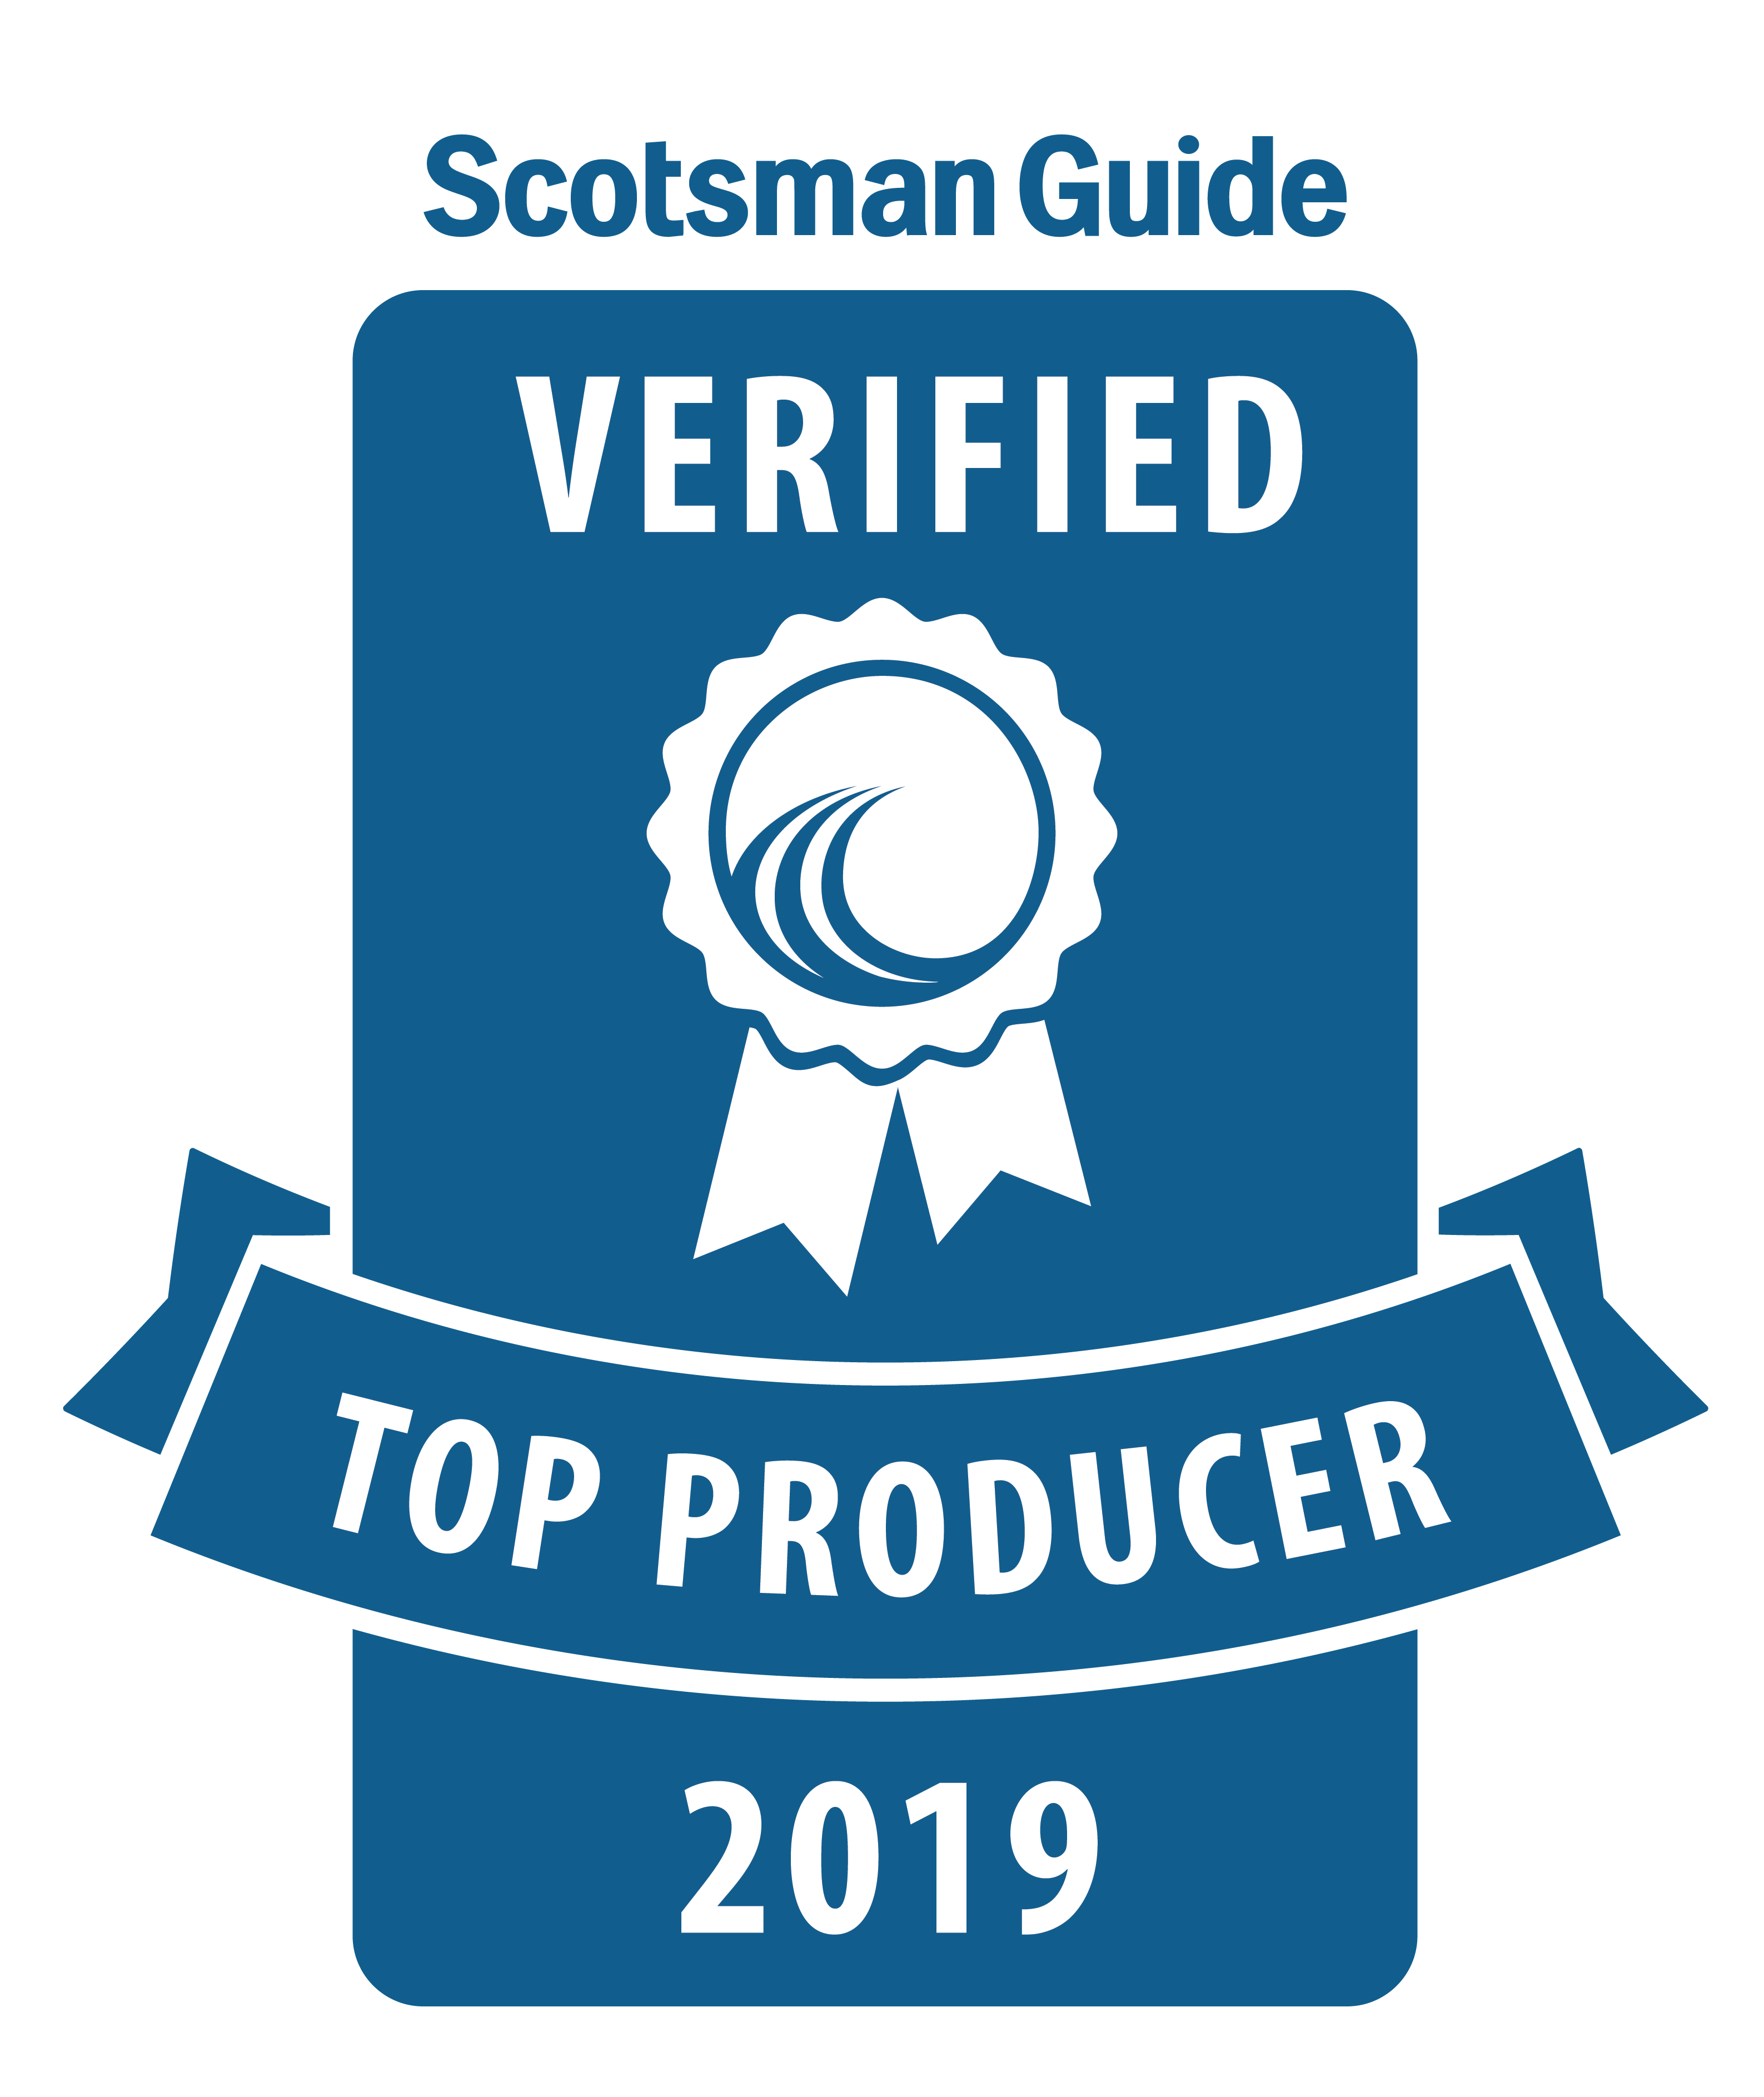 Leesa Sandoval Scotsman Guide Verified Top Producer 2019